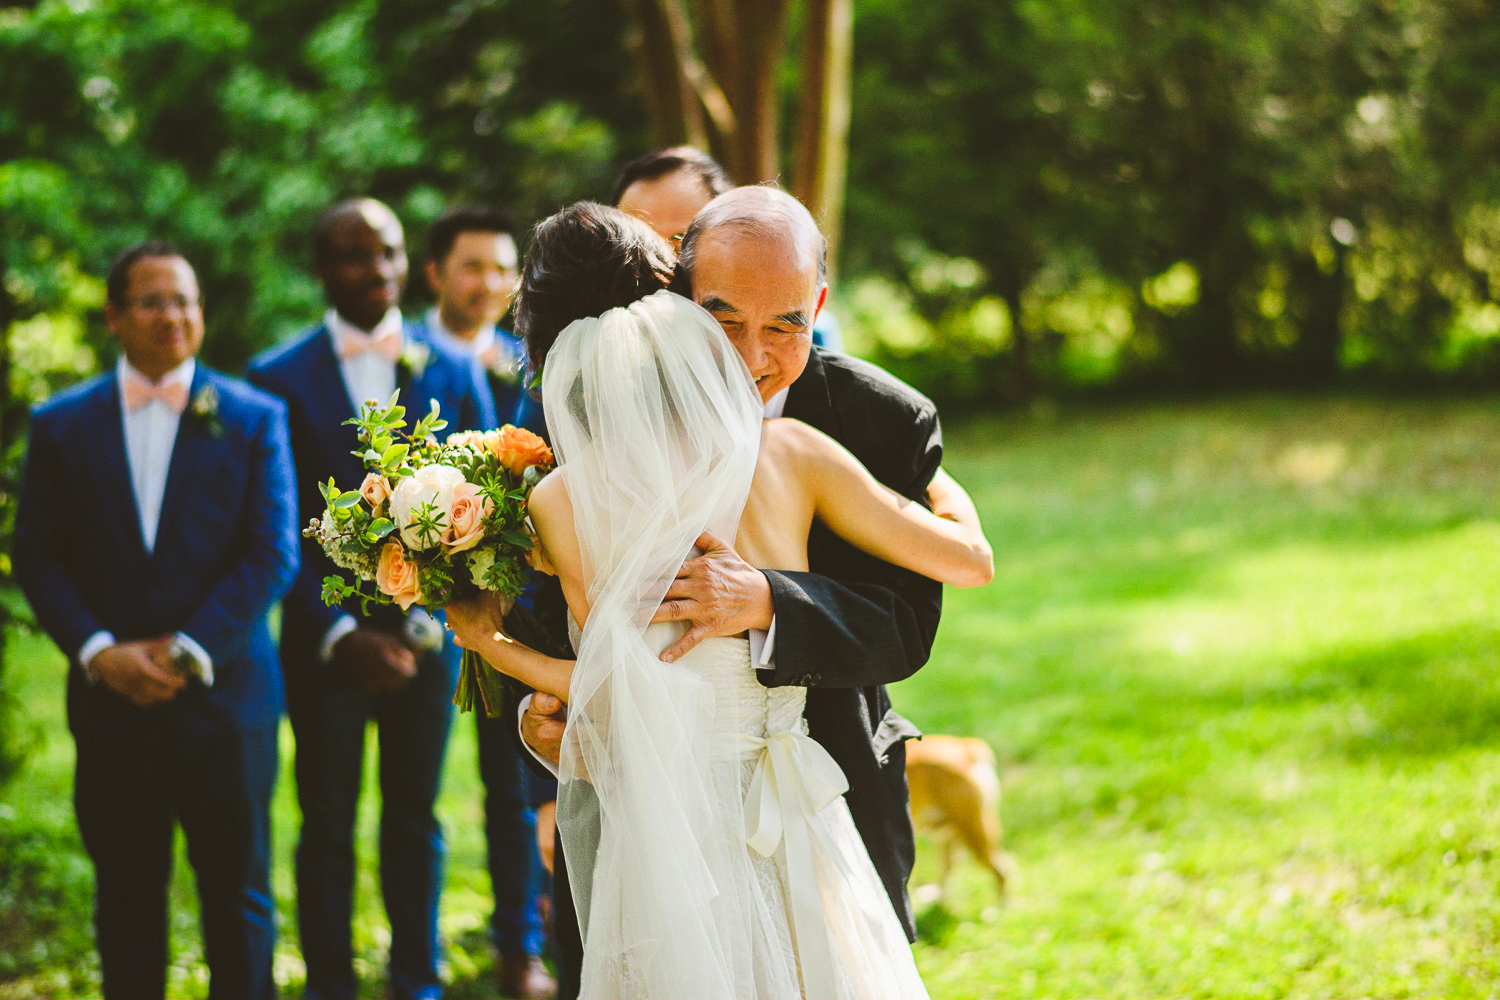 027 - father of the bride hugging the bride at a wedding ceremony.jpg